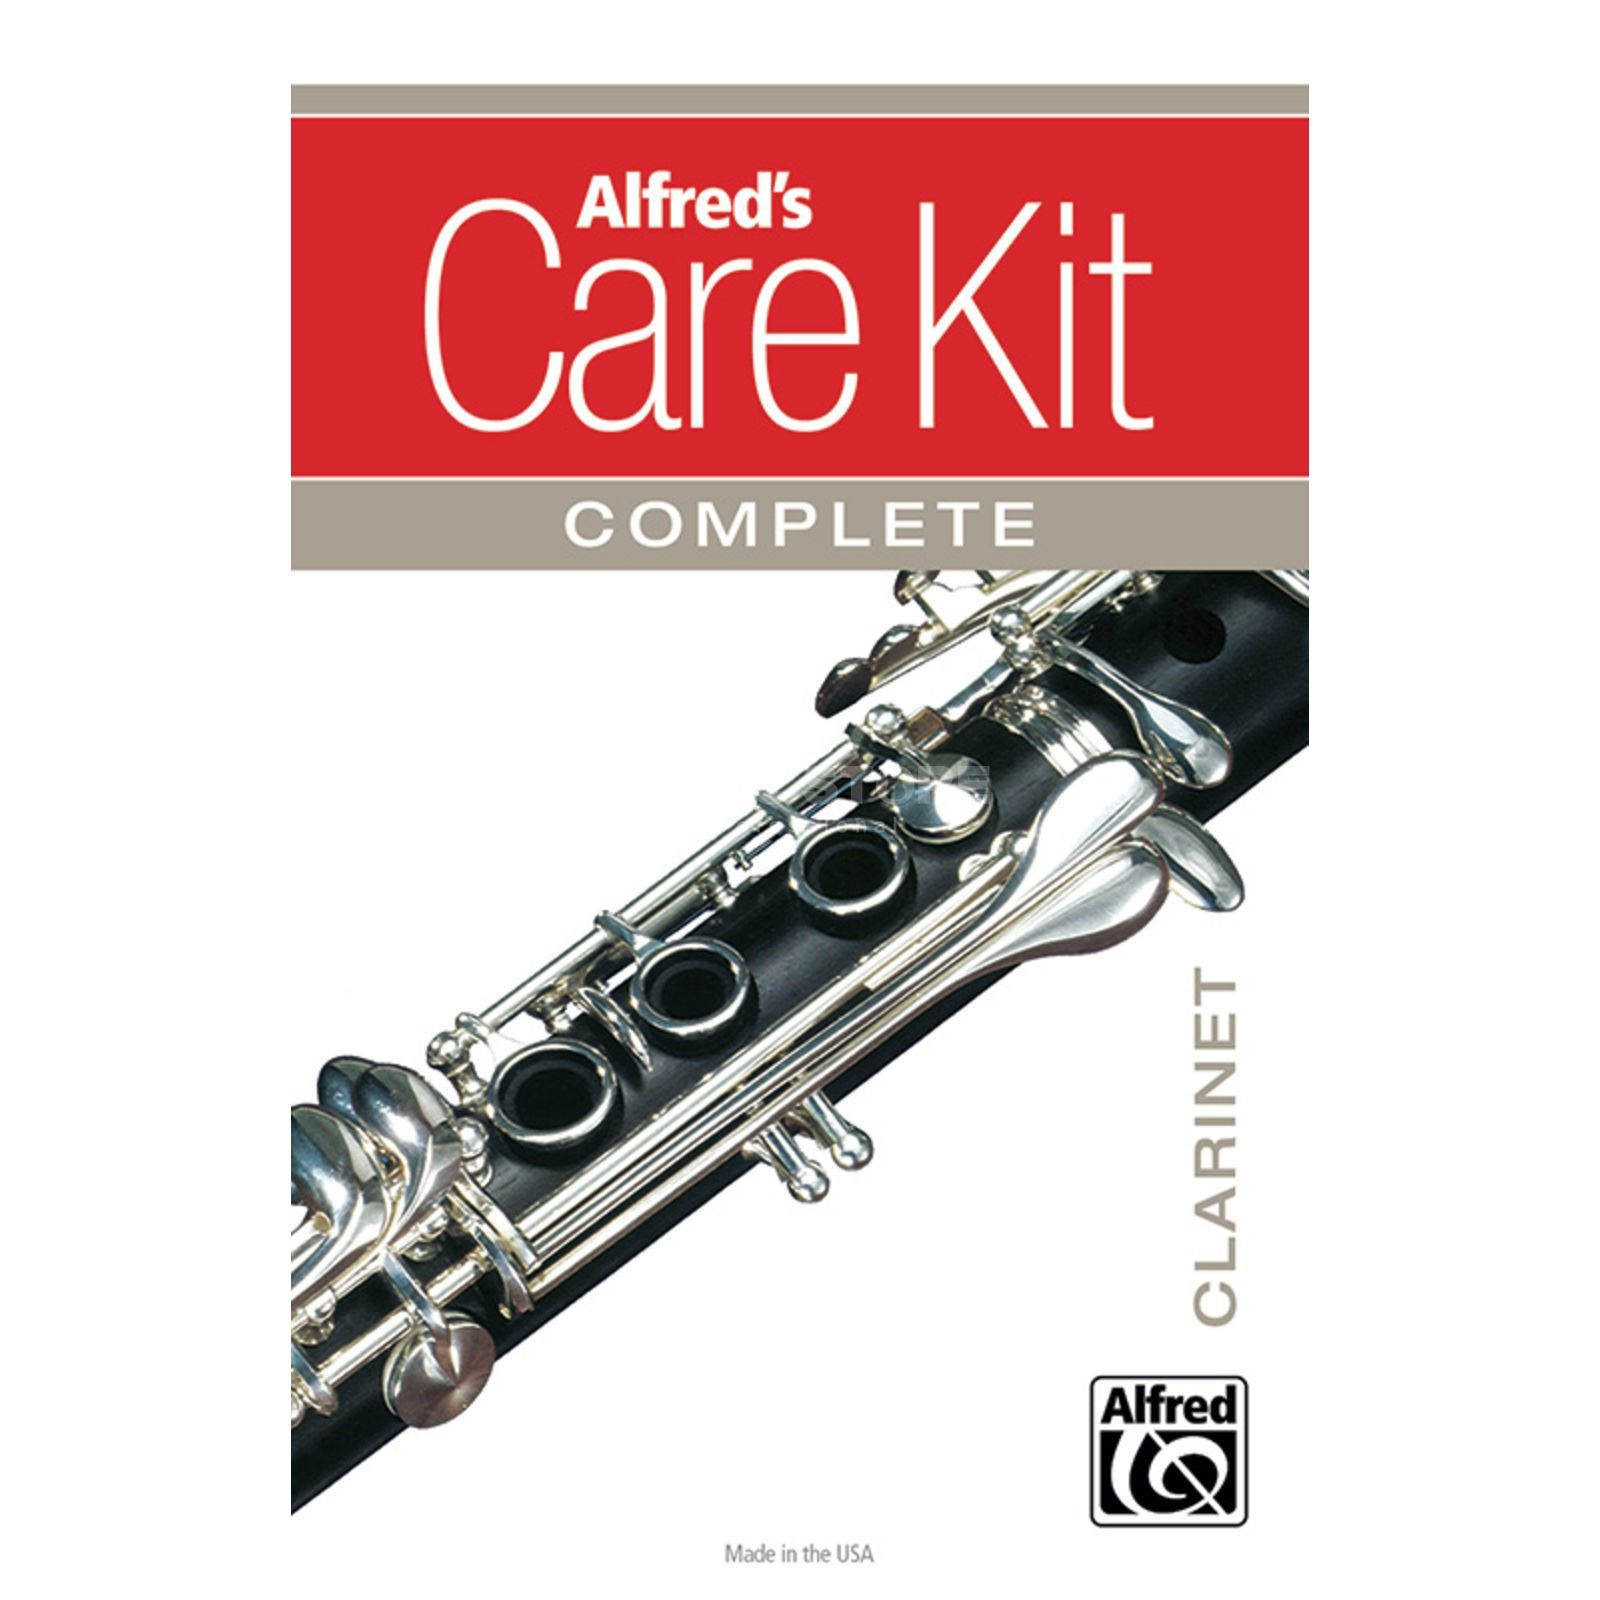 Alfred Music Care Kit Complete: Clarinet  Изображение товара